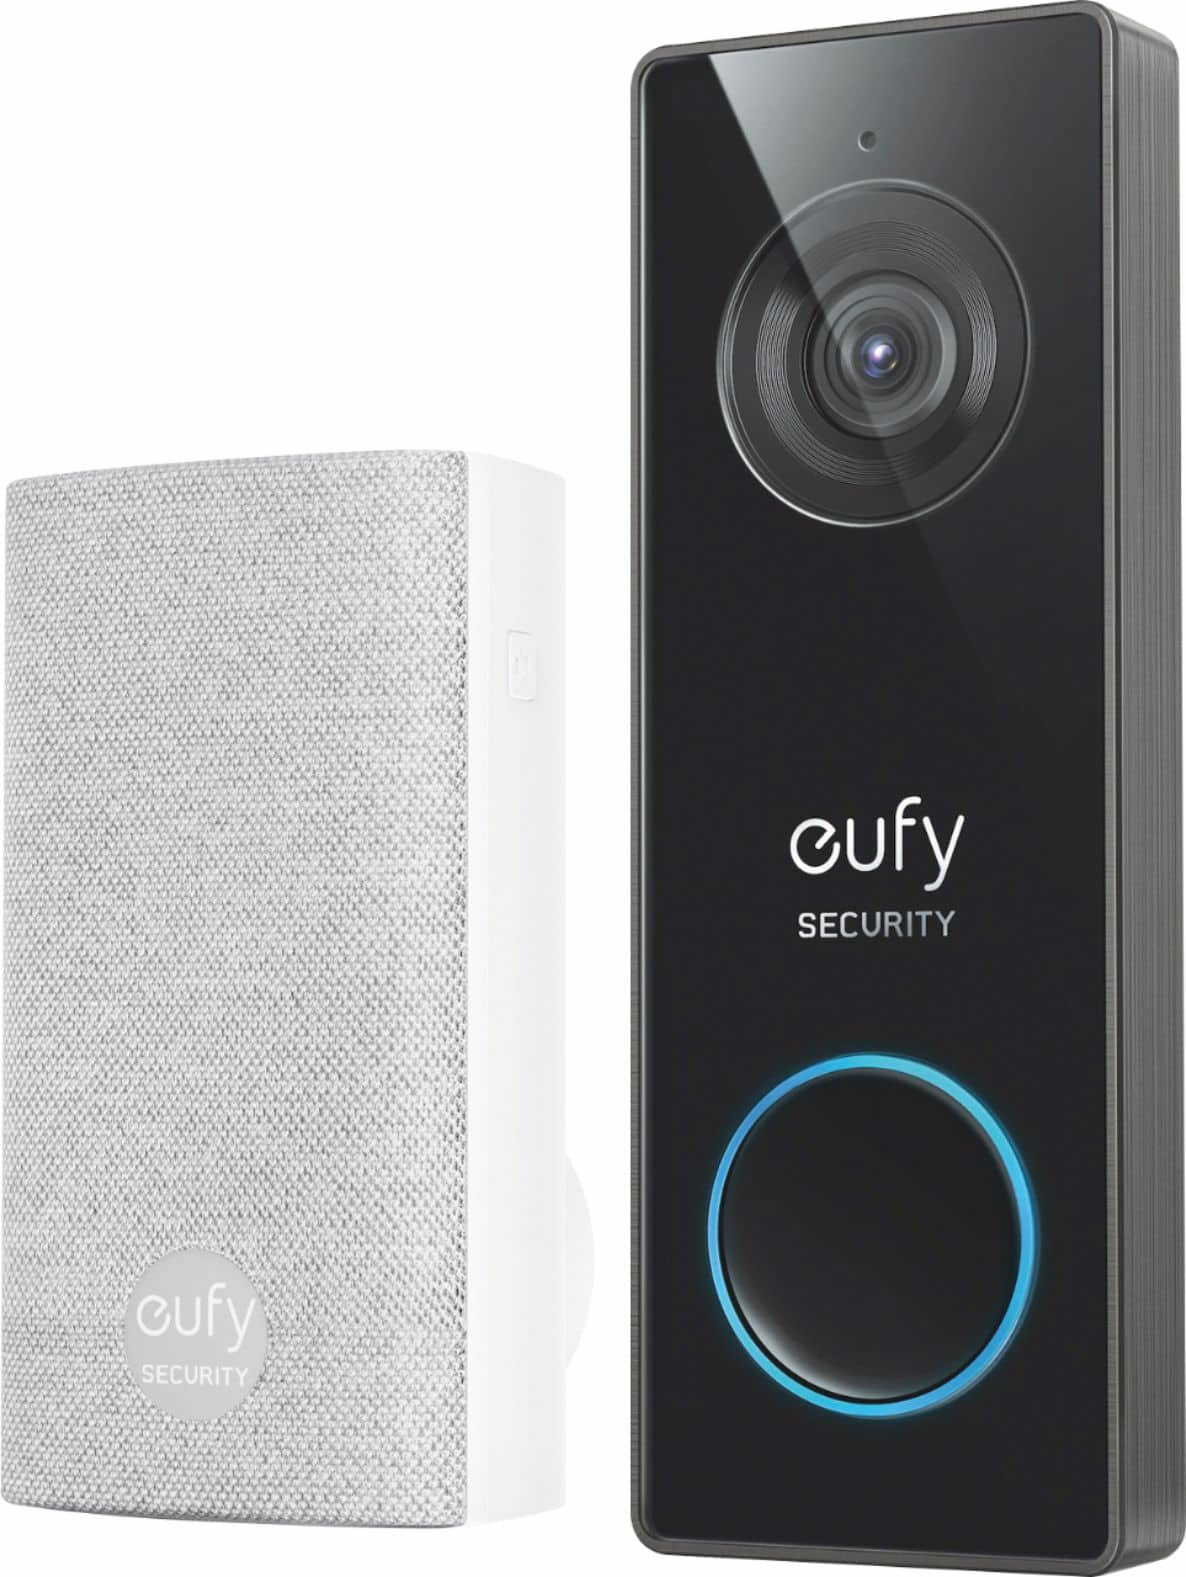 NEW! eufy Security Wired 2K Video Doorbell 24/7 recording $139.99 - Best Buy *Now $139.99*